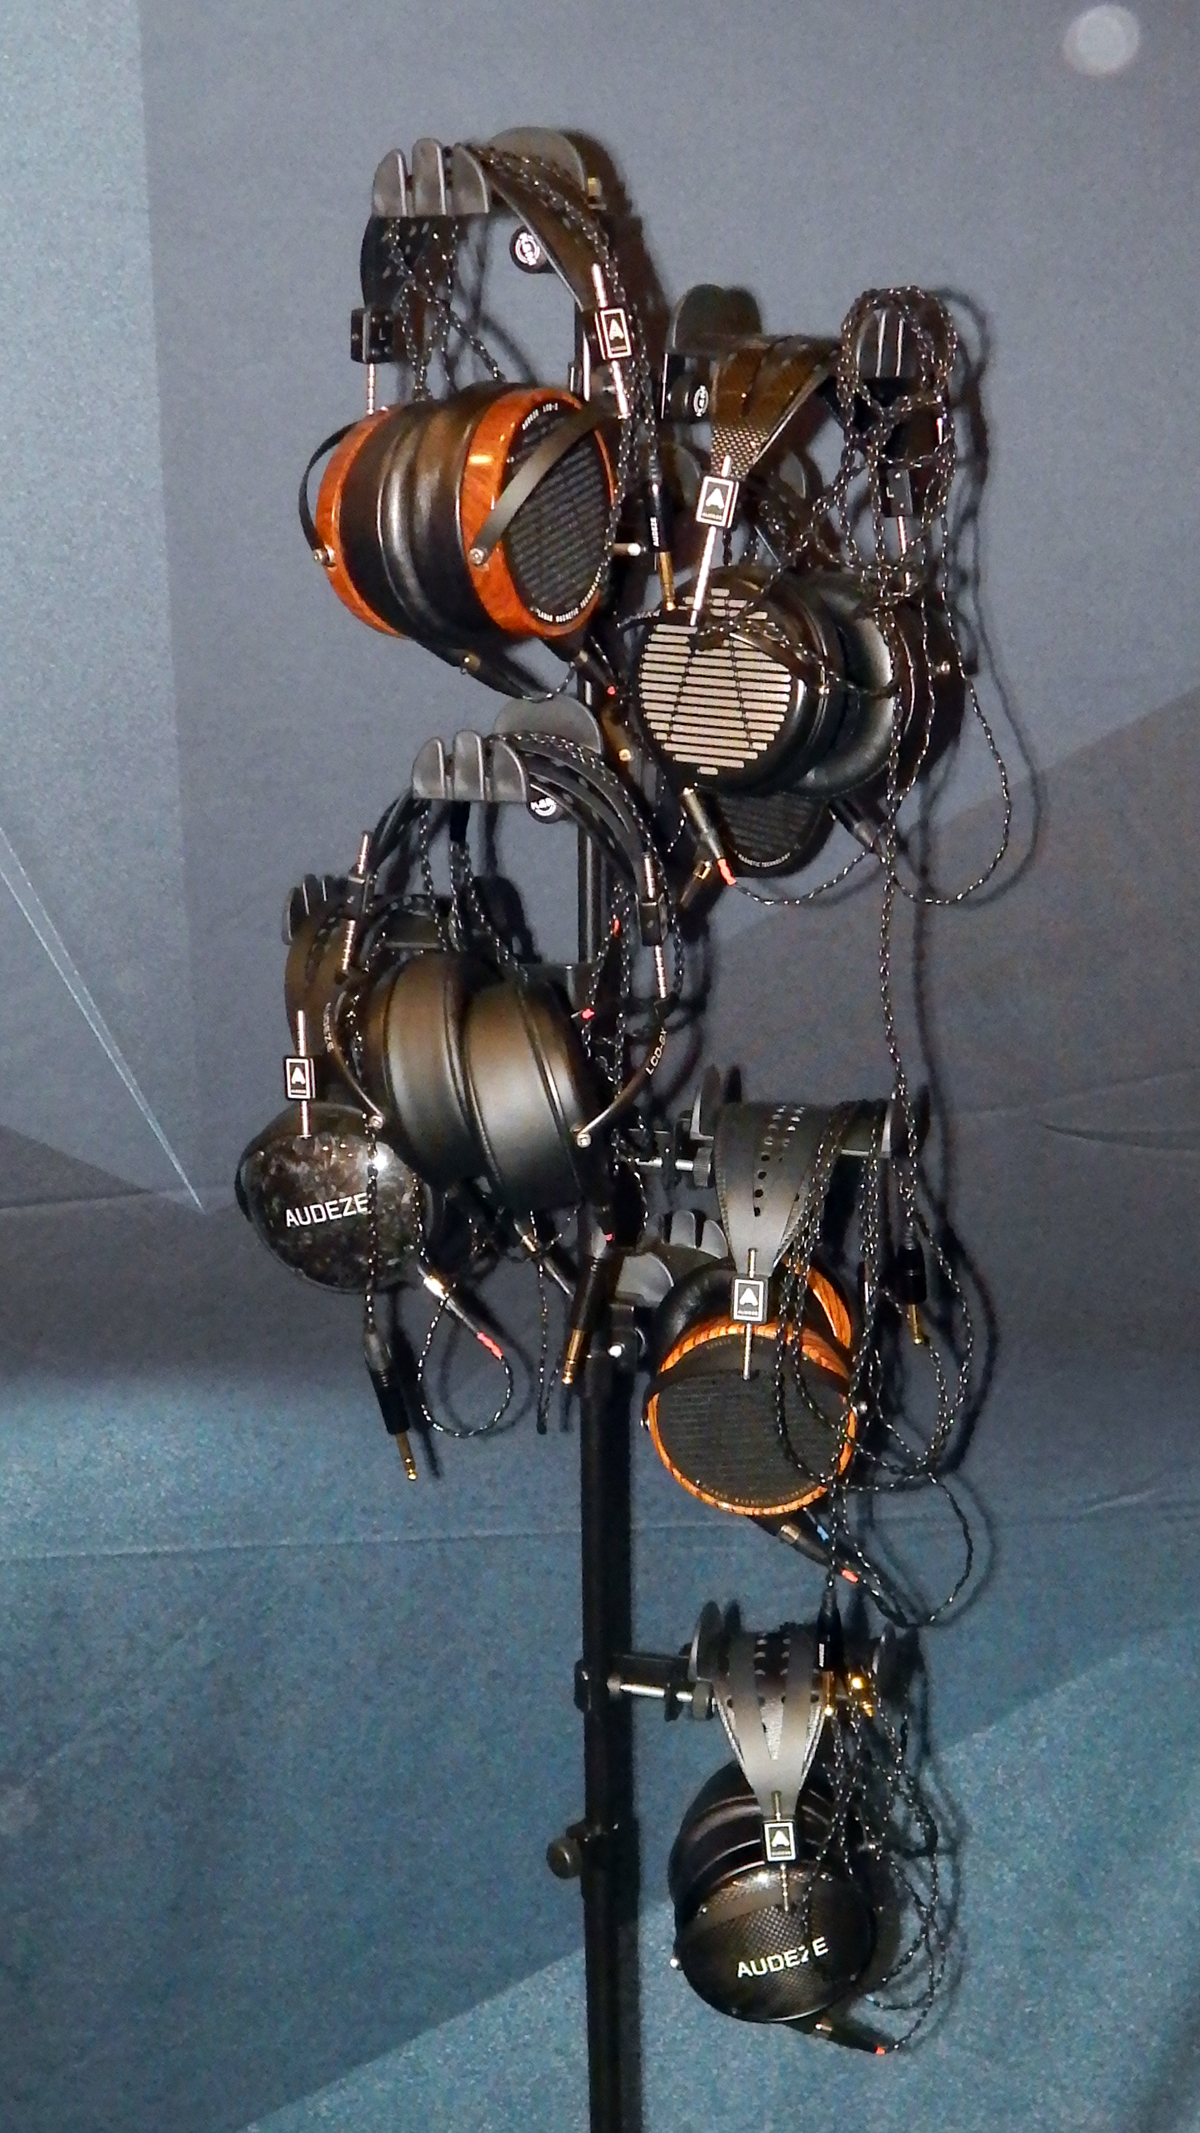 The Audeze tree of headphones displaying their LCD line of headphones for quick easy access by CanJam SoCal 2021 attendees. CanJam SoCal 2021